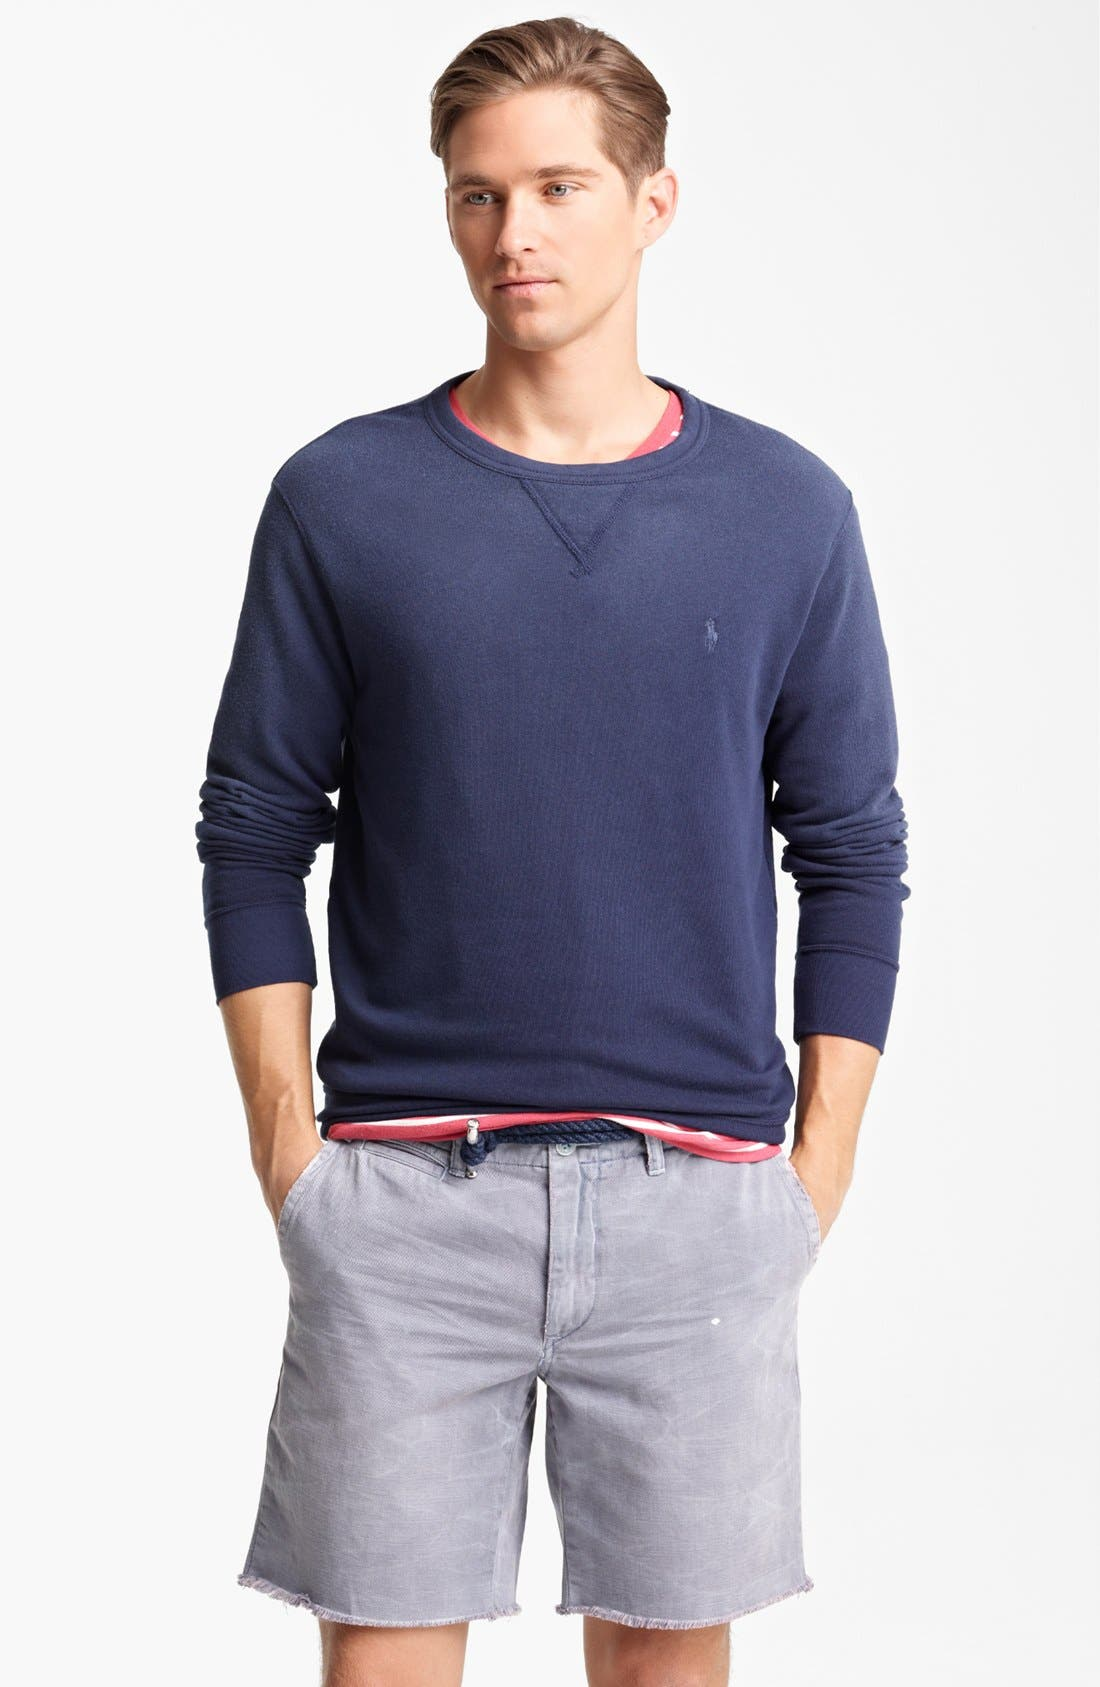 Alternate Image 1 Selected - Polo Ralph Lauren Sweat Shirt